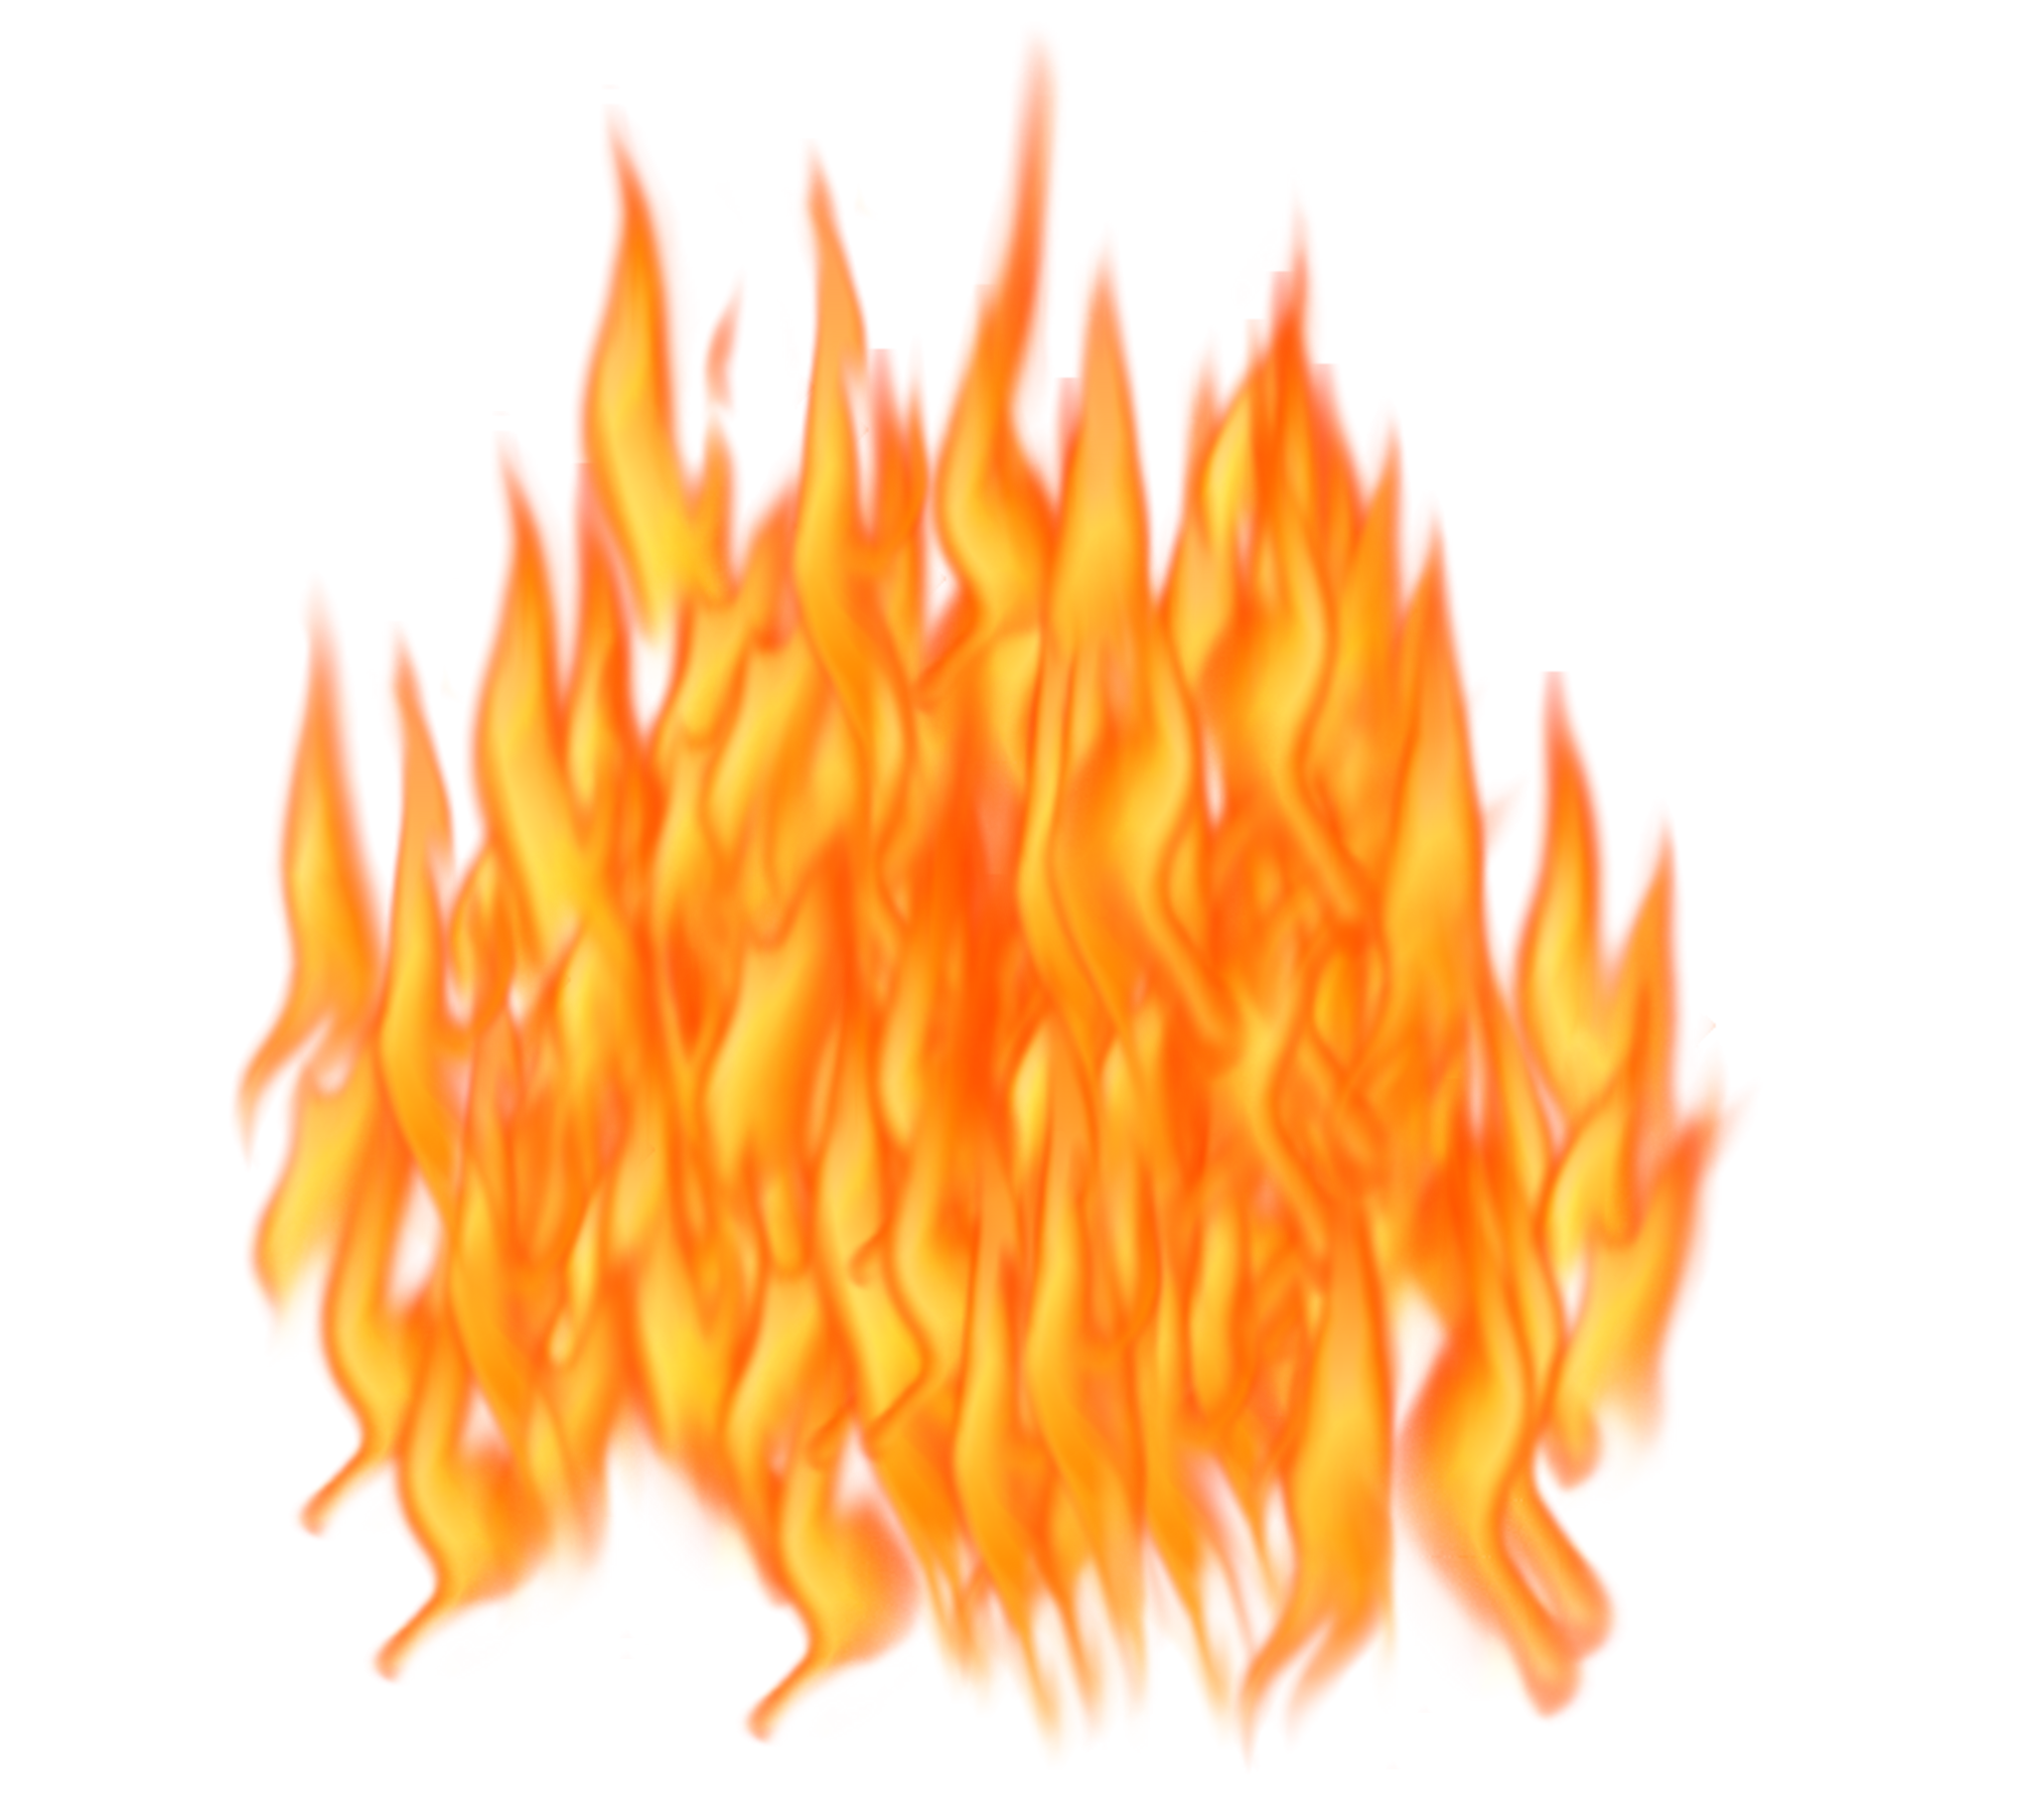 Football clipart with flames png. Collection of free gire